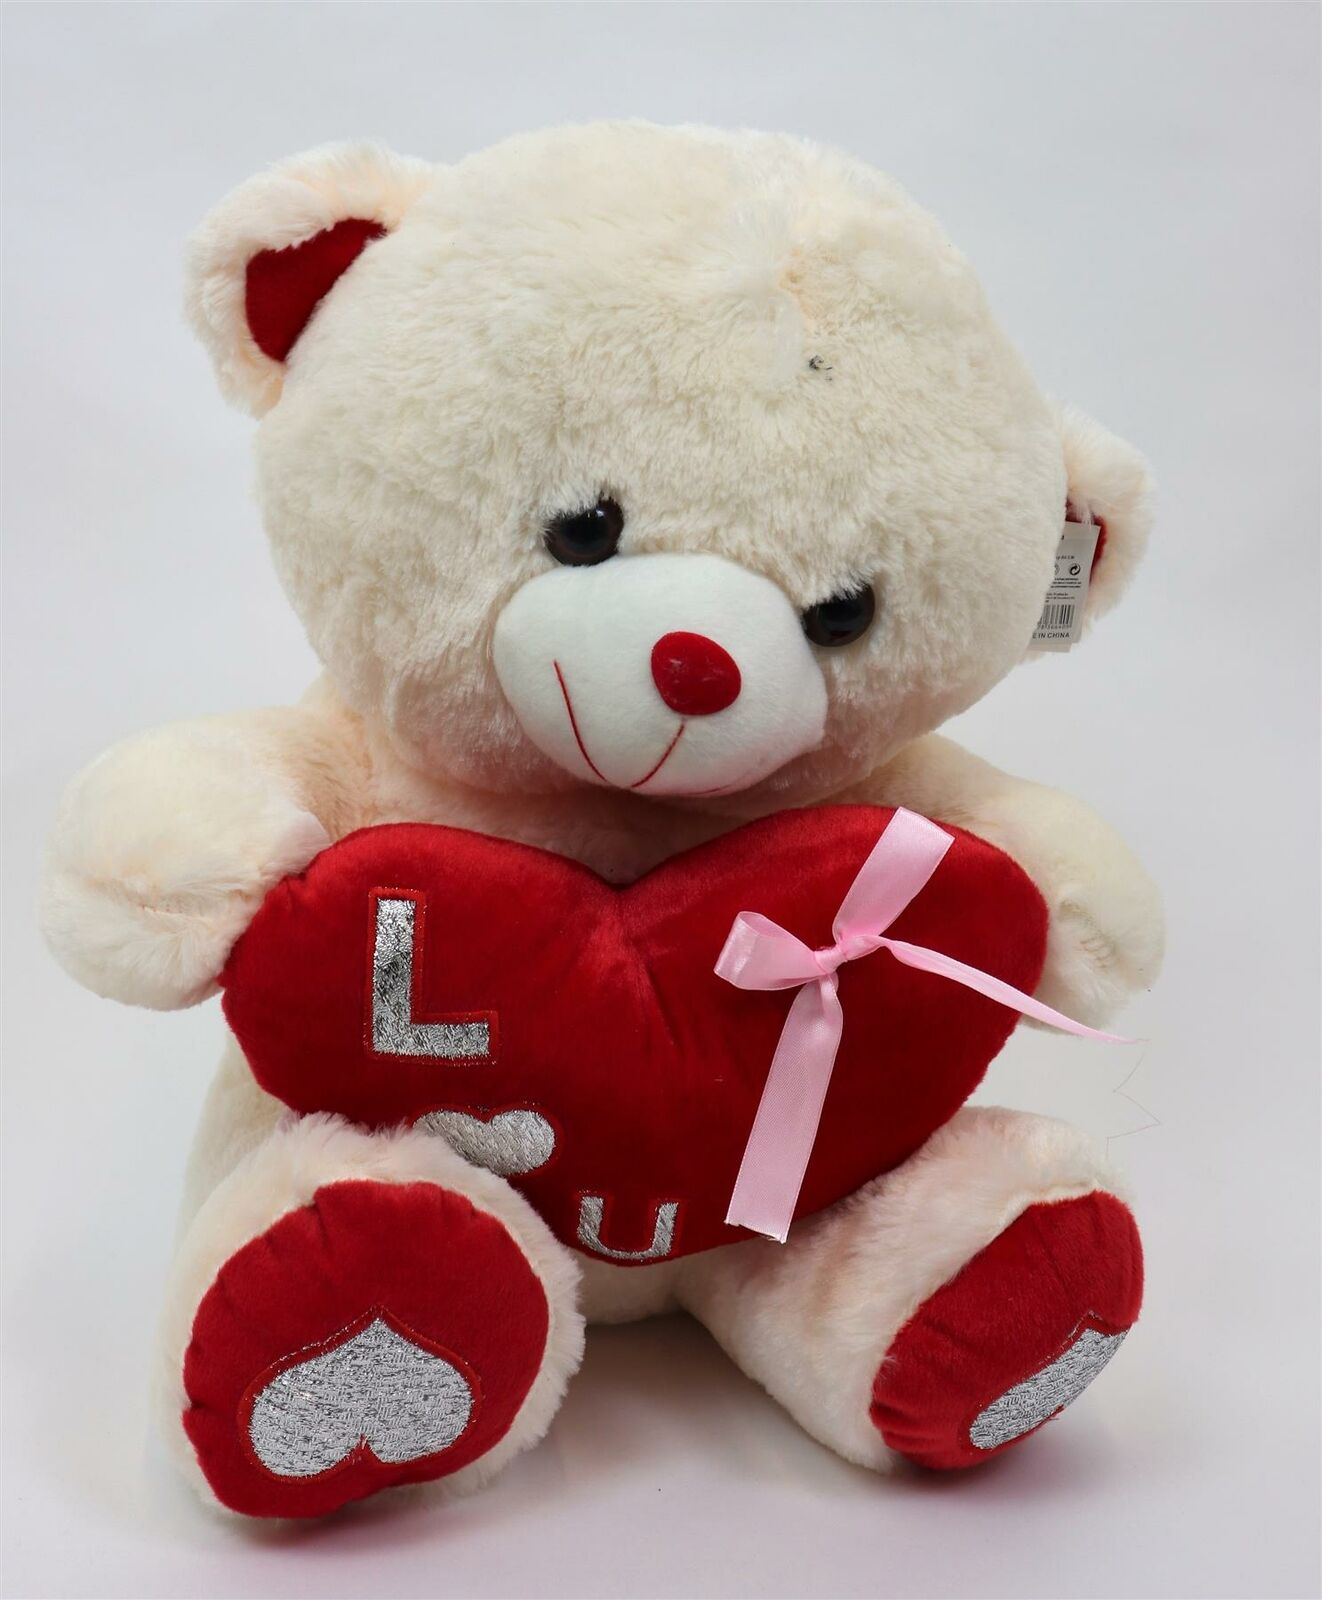 Cute Lamb Stuffed Animals, 50cm Teddy Bear Red Holding Heart Valentine Gifts Present Soft Plush Cute Toys For Sale Online Ebay